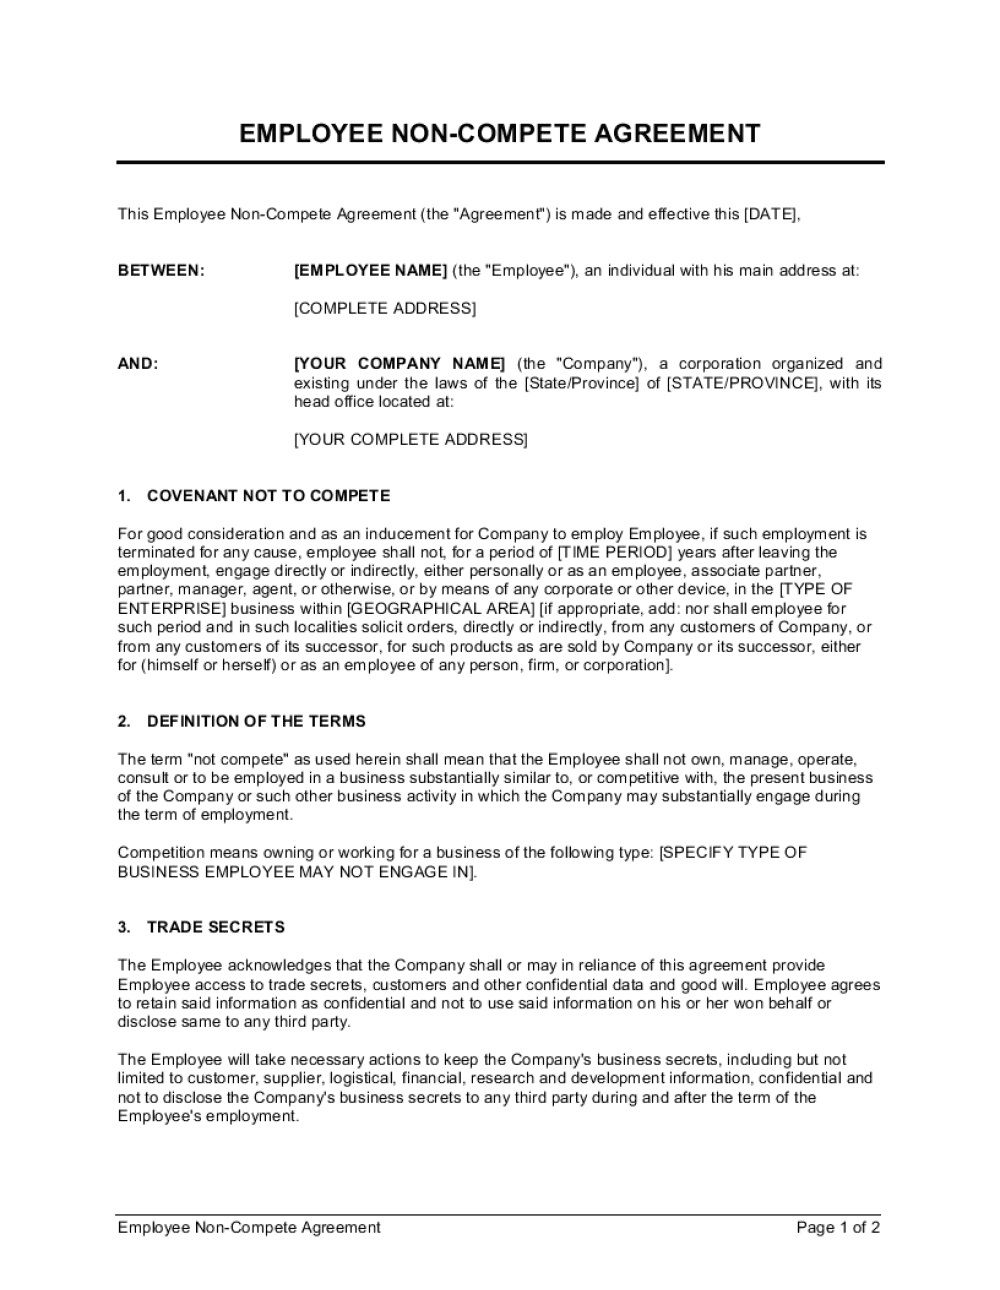 001 Impressive Employee Non Compete Agreement Template Concept  Free Confidentiality Non-compete DisclosureFull